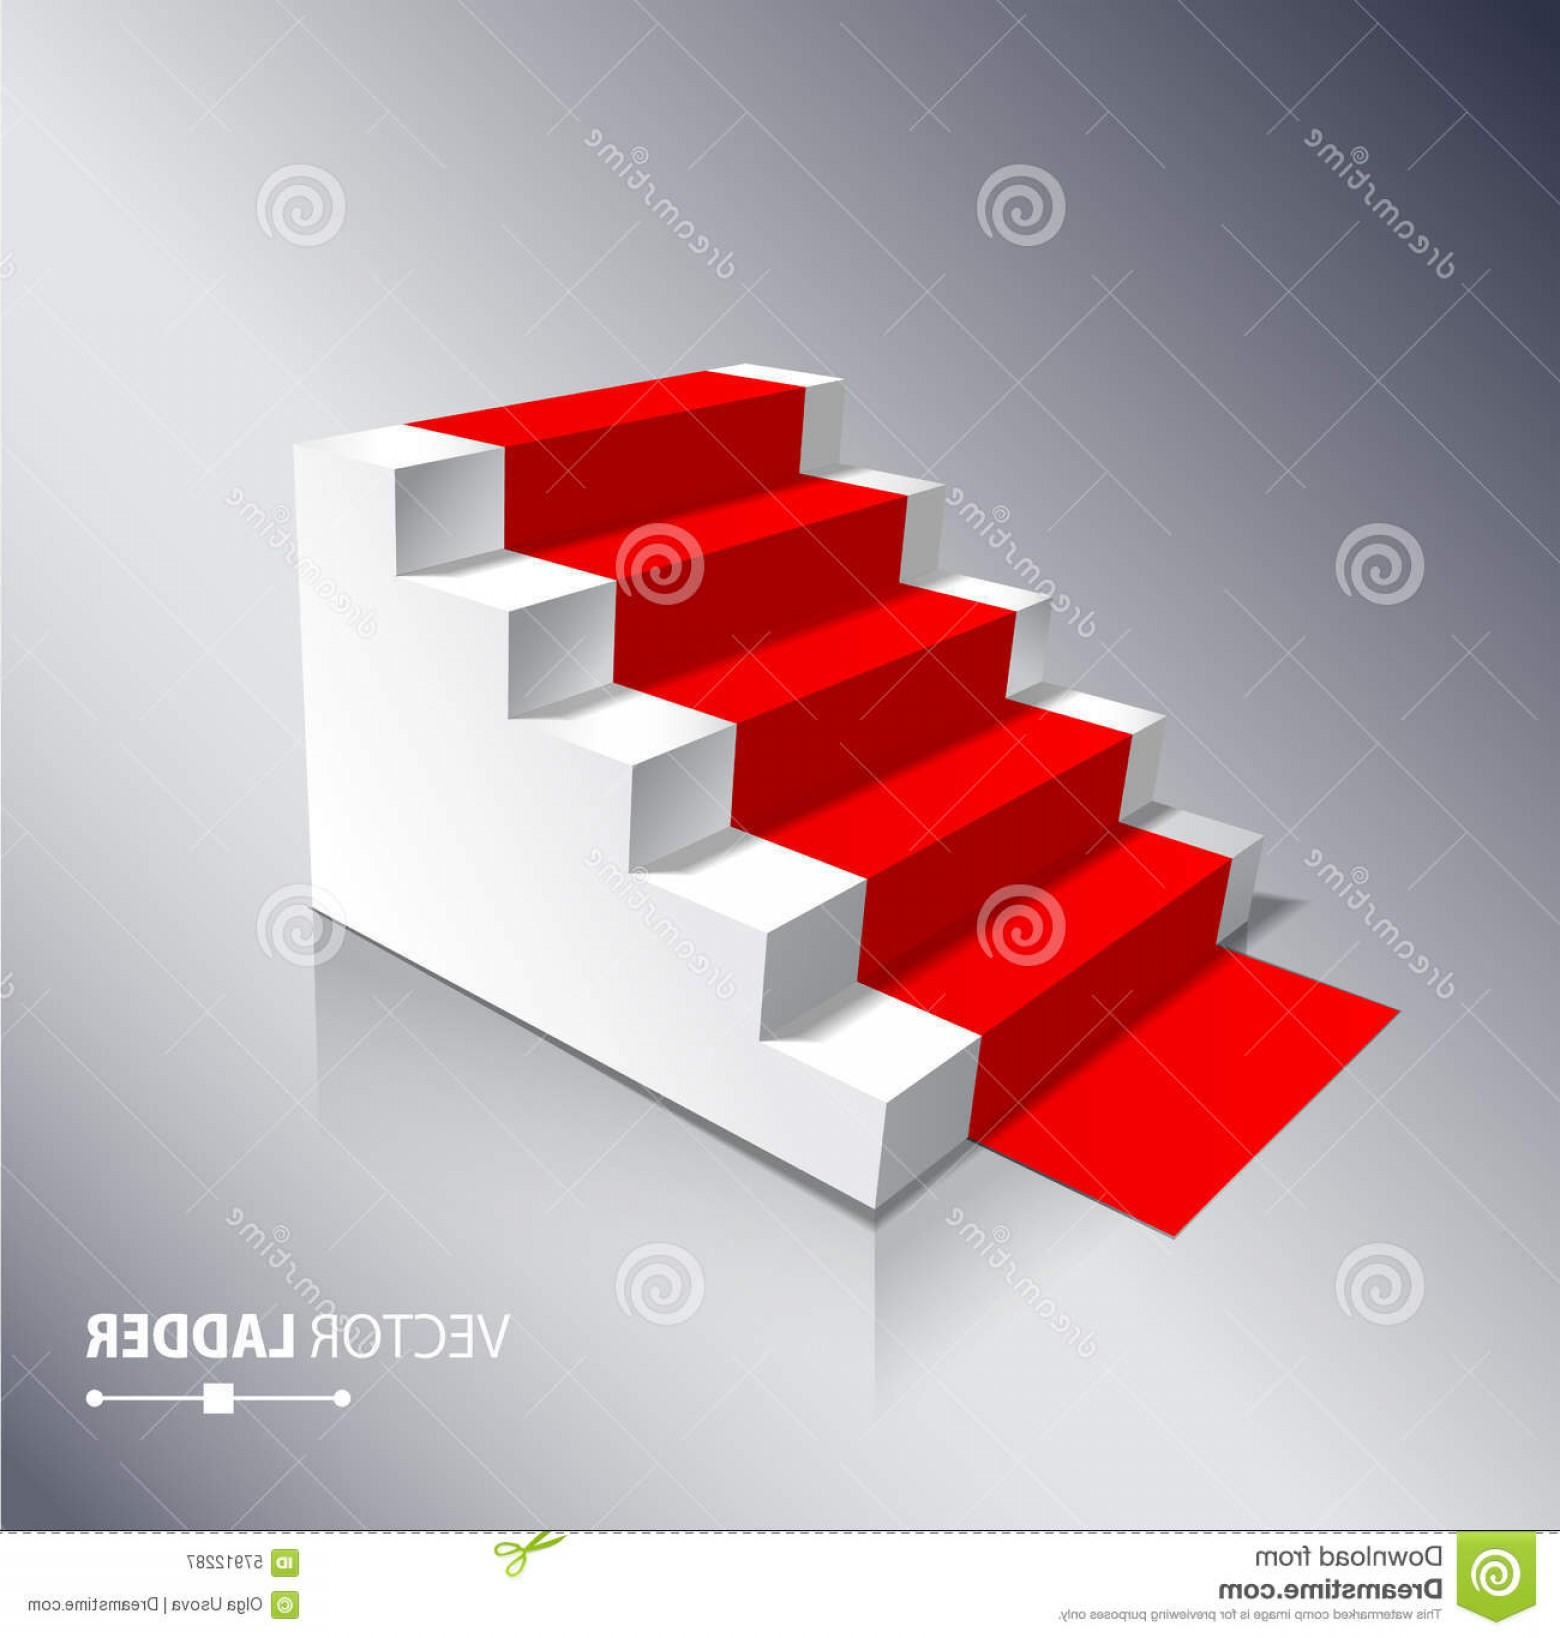 Carpet Vector 2D: Stairs On White Background With Red Carpet Steps Illustration